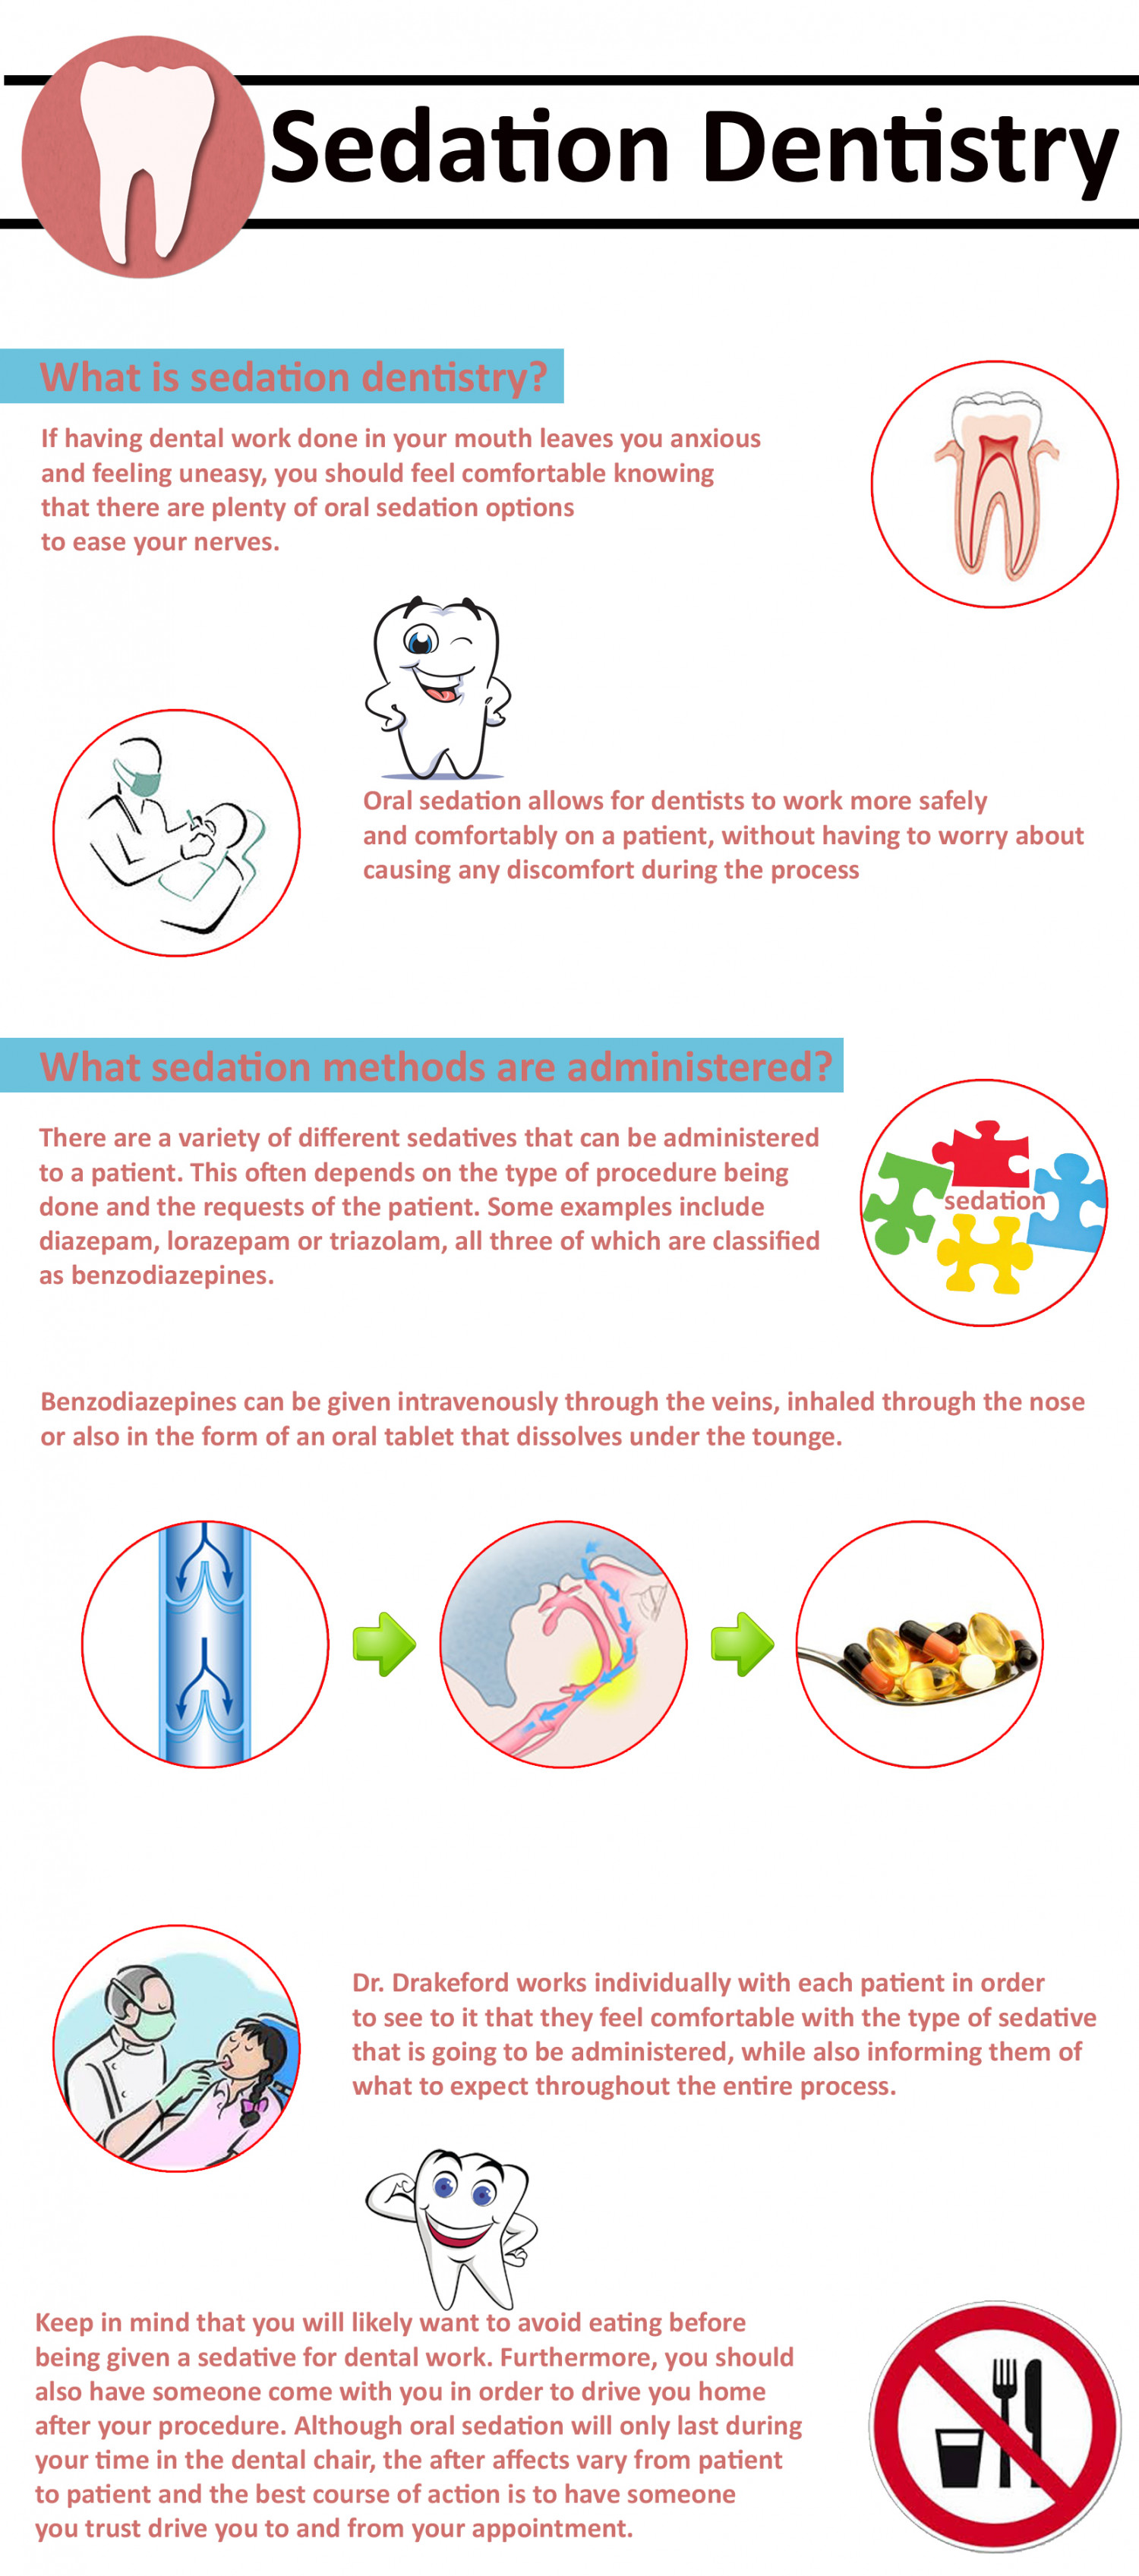 Sedation Dentistry Infographic